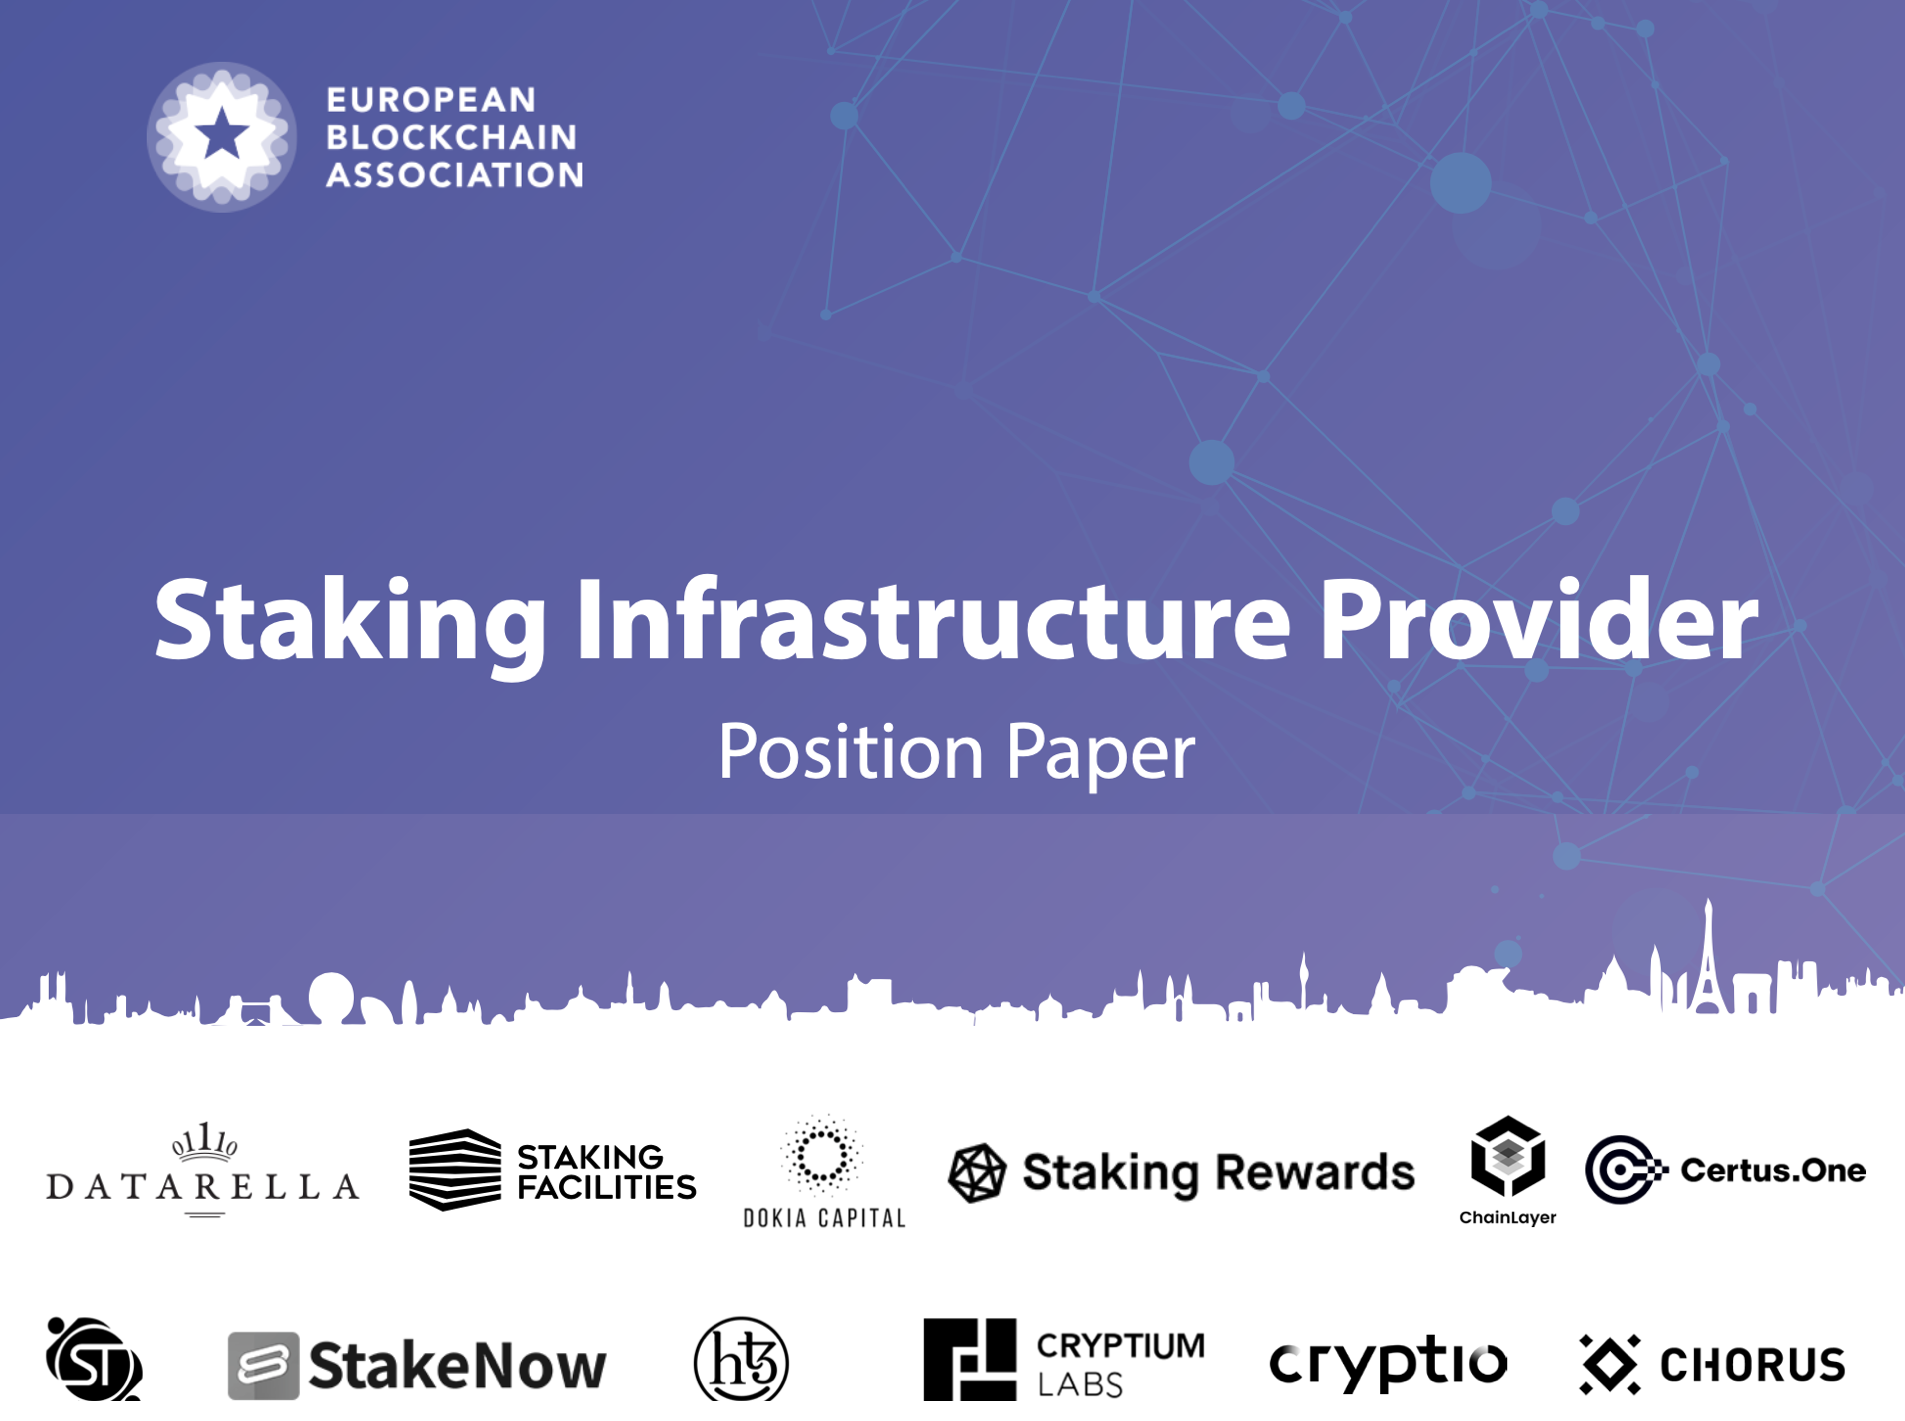 EBA EUPoS Staking Infrastructure Position Paper